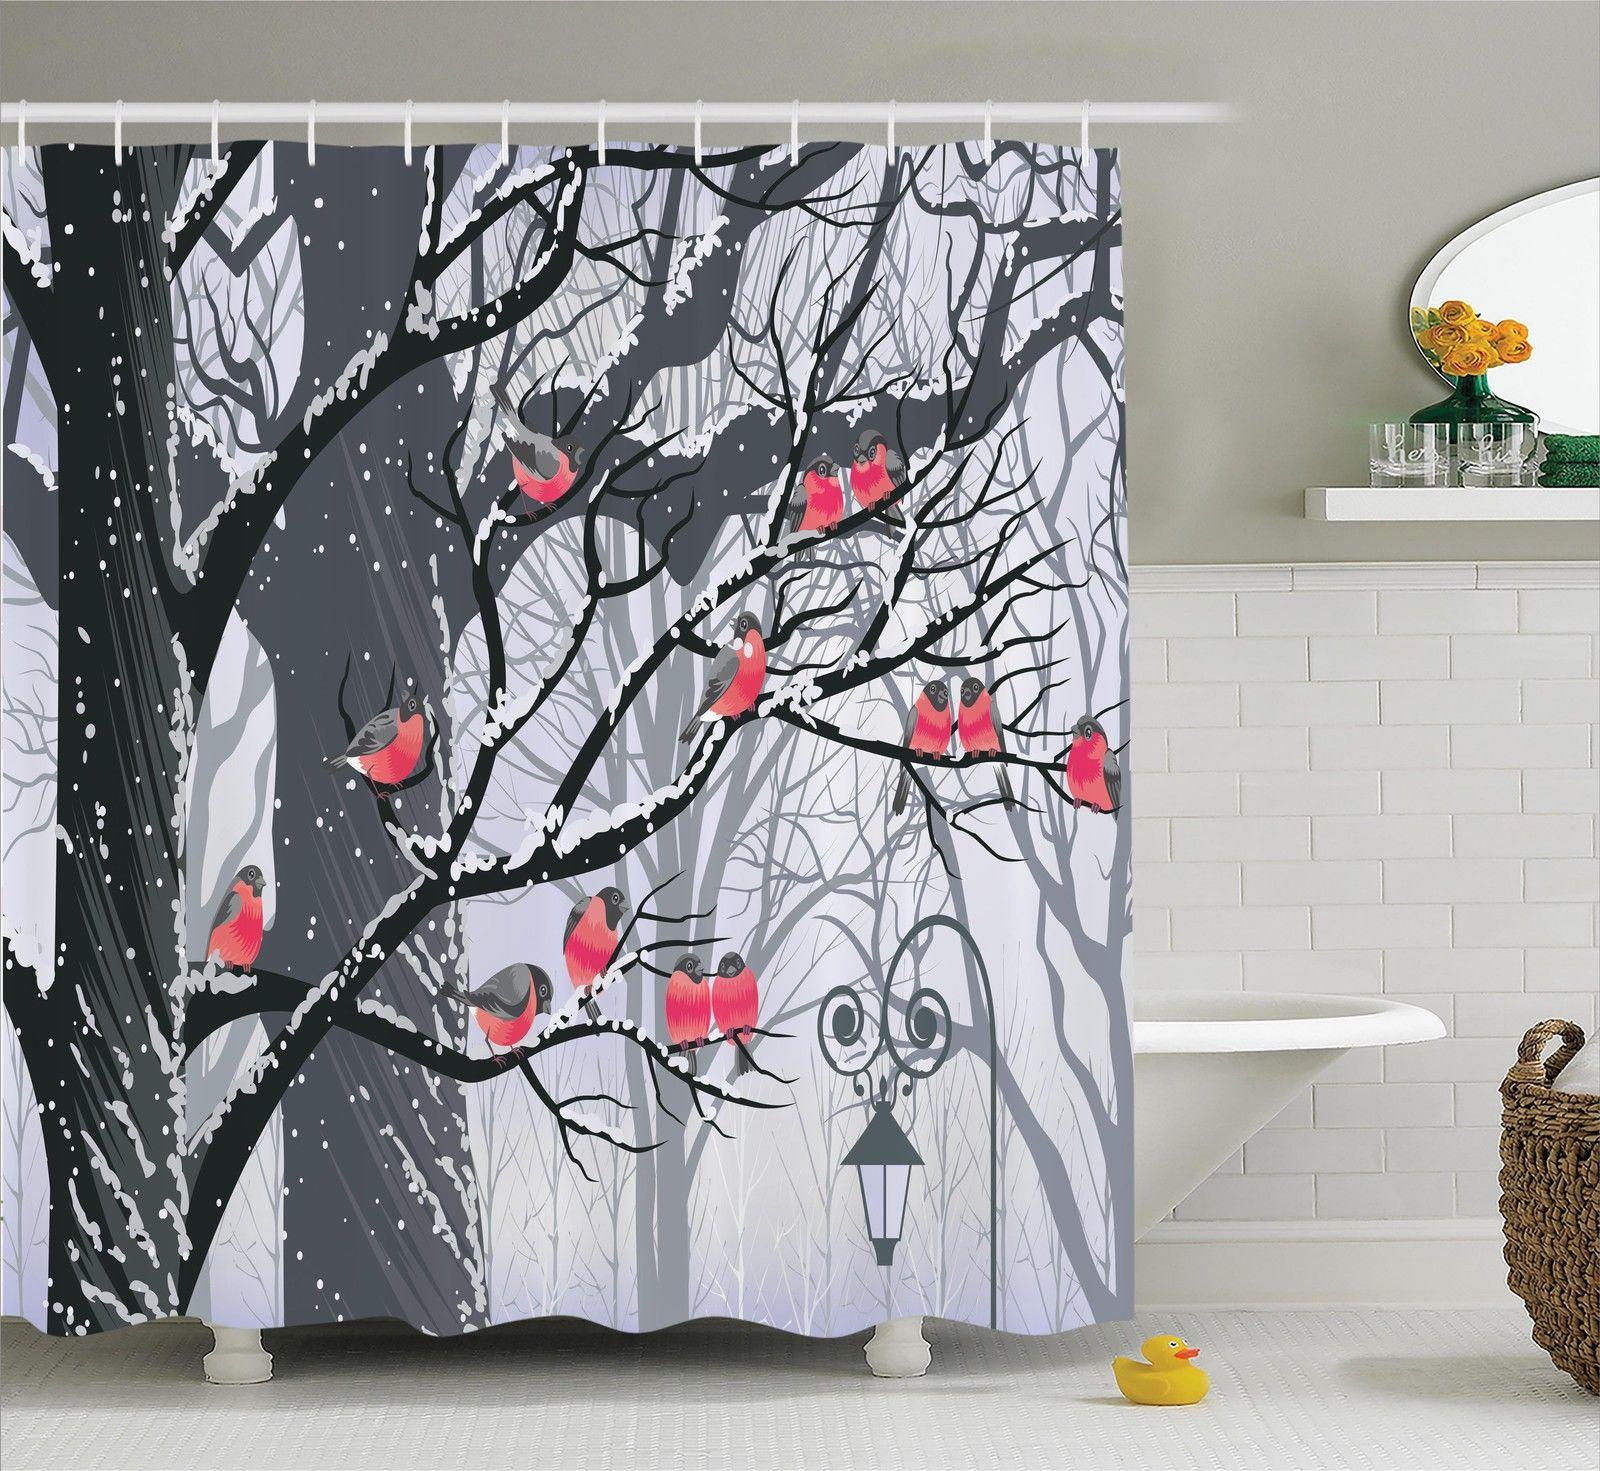 Apartment Decor Shower Curtain Set, Bullfinches On Trees In Winter City Park Snow Cold Weather Immigrant Birds Design, Bathroom Accessories, 69W X 70L Inches, By Ambesonne